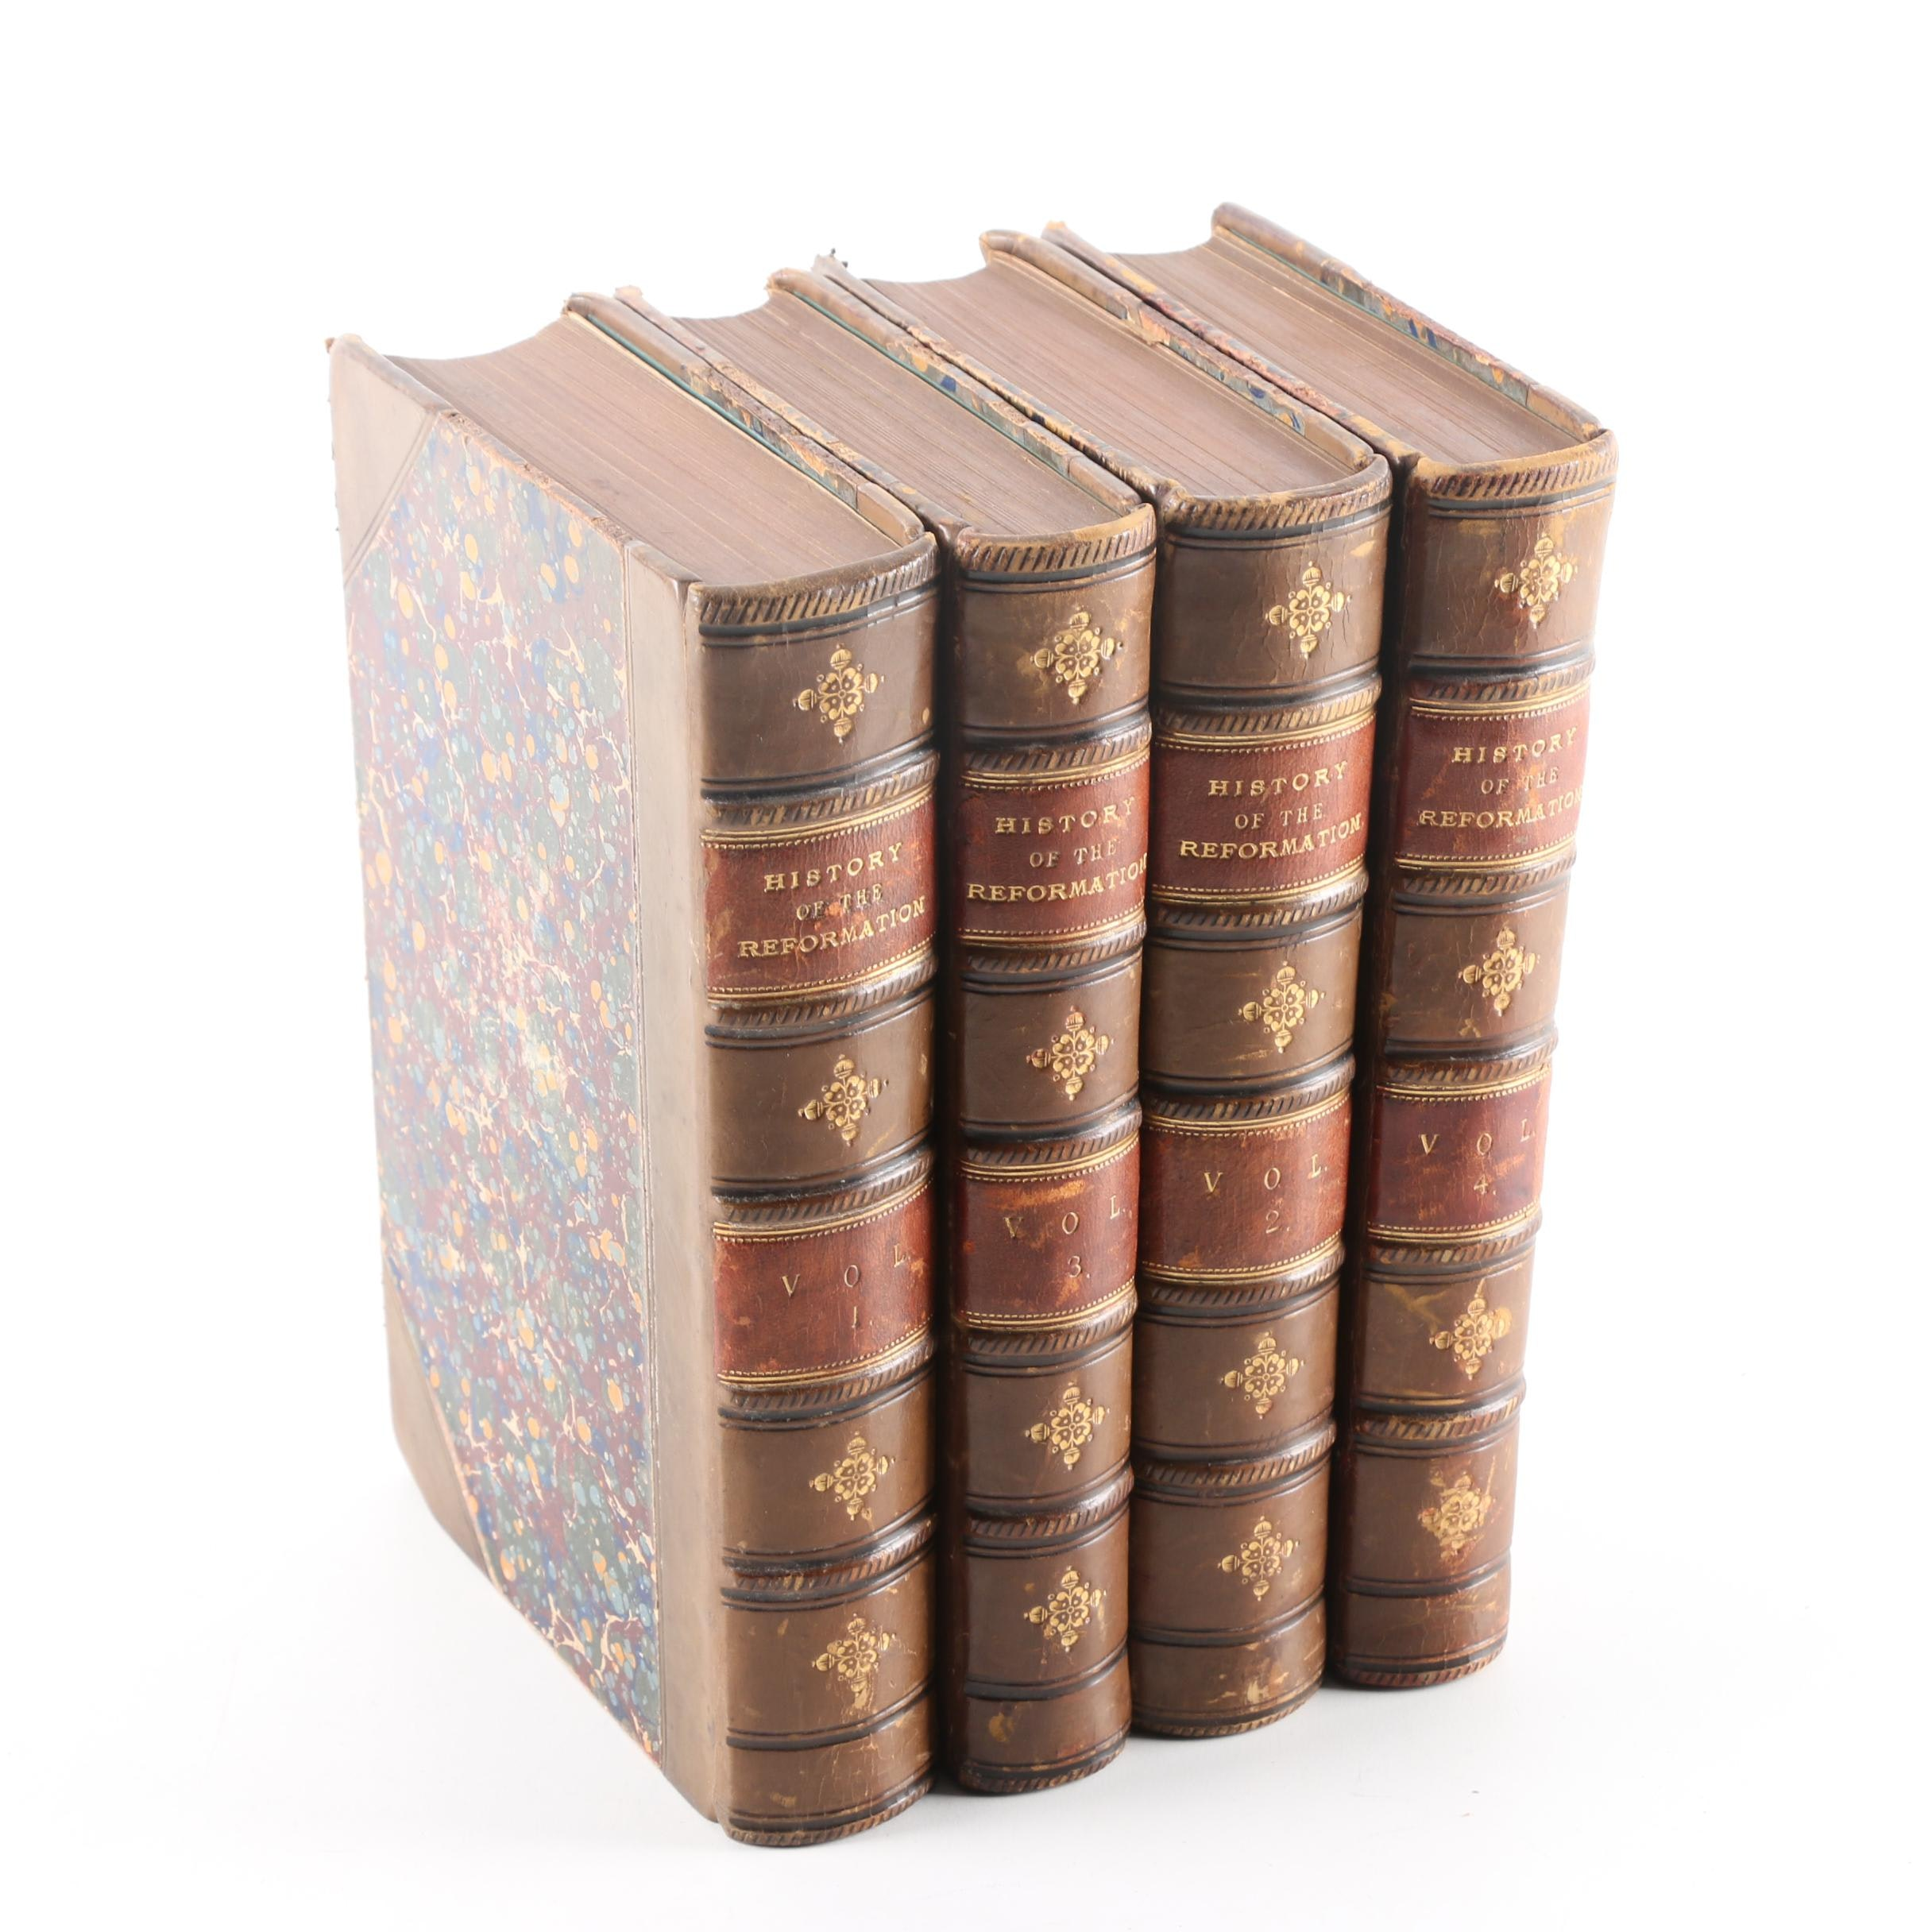 """1853 """"History of the Reformation"""" Complete Set by Jean-Henri Merle d'Aubigné"""